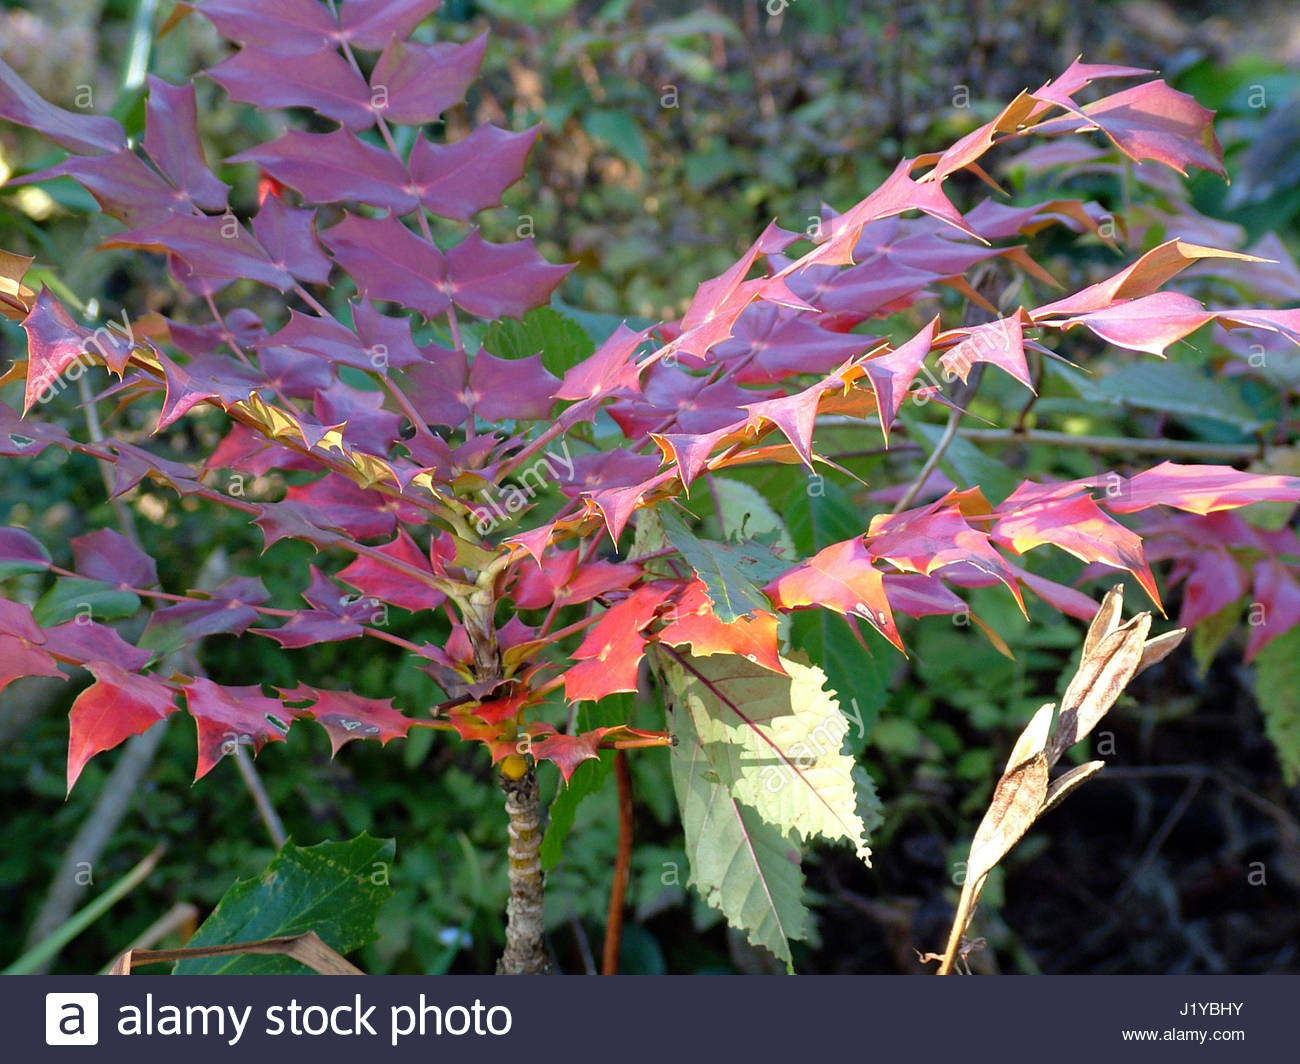 Bealei stock photos bealei stock images alamy for Mahonia japonica